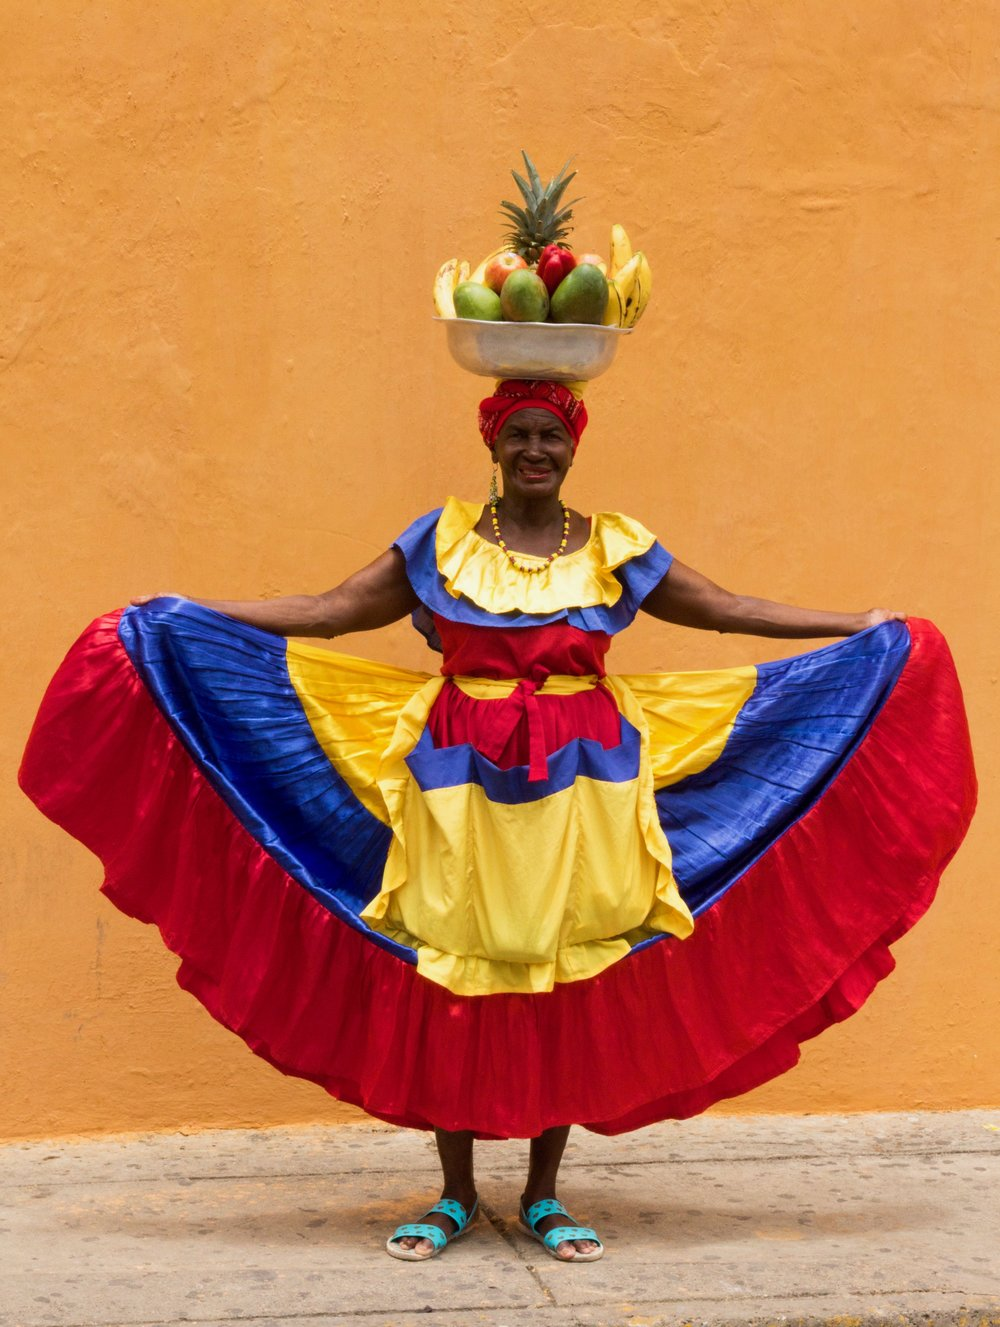 A palenquera, from San Basilio de Palenque, just southeast of Cartagena, a town founded by runaway slaves.